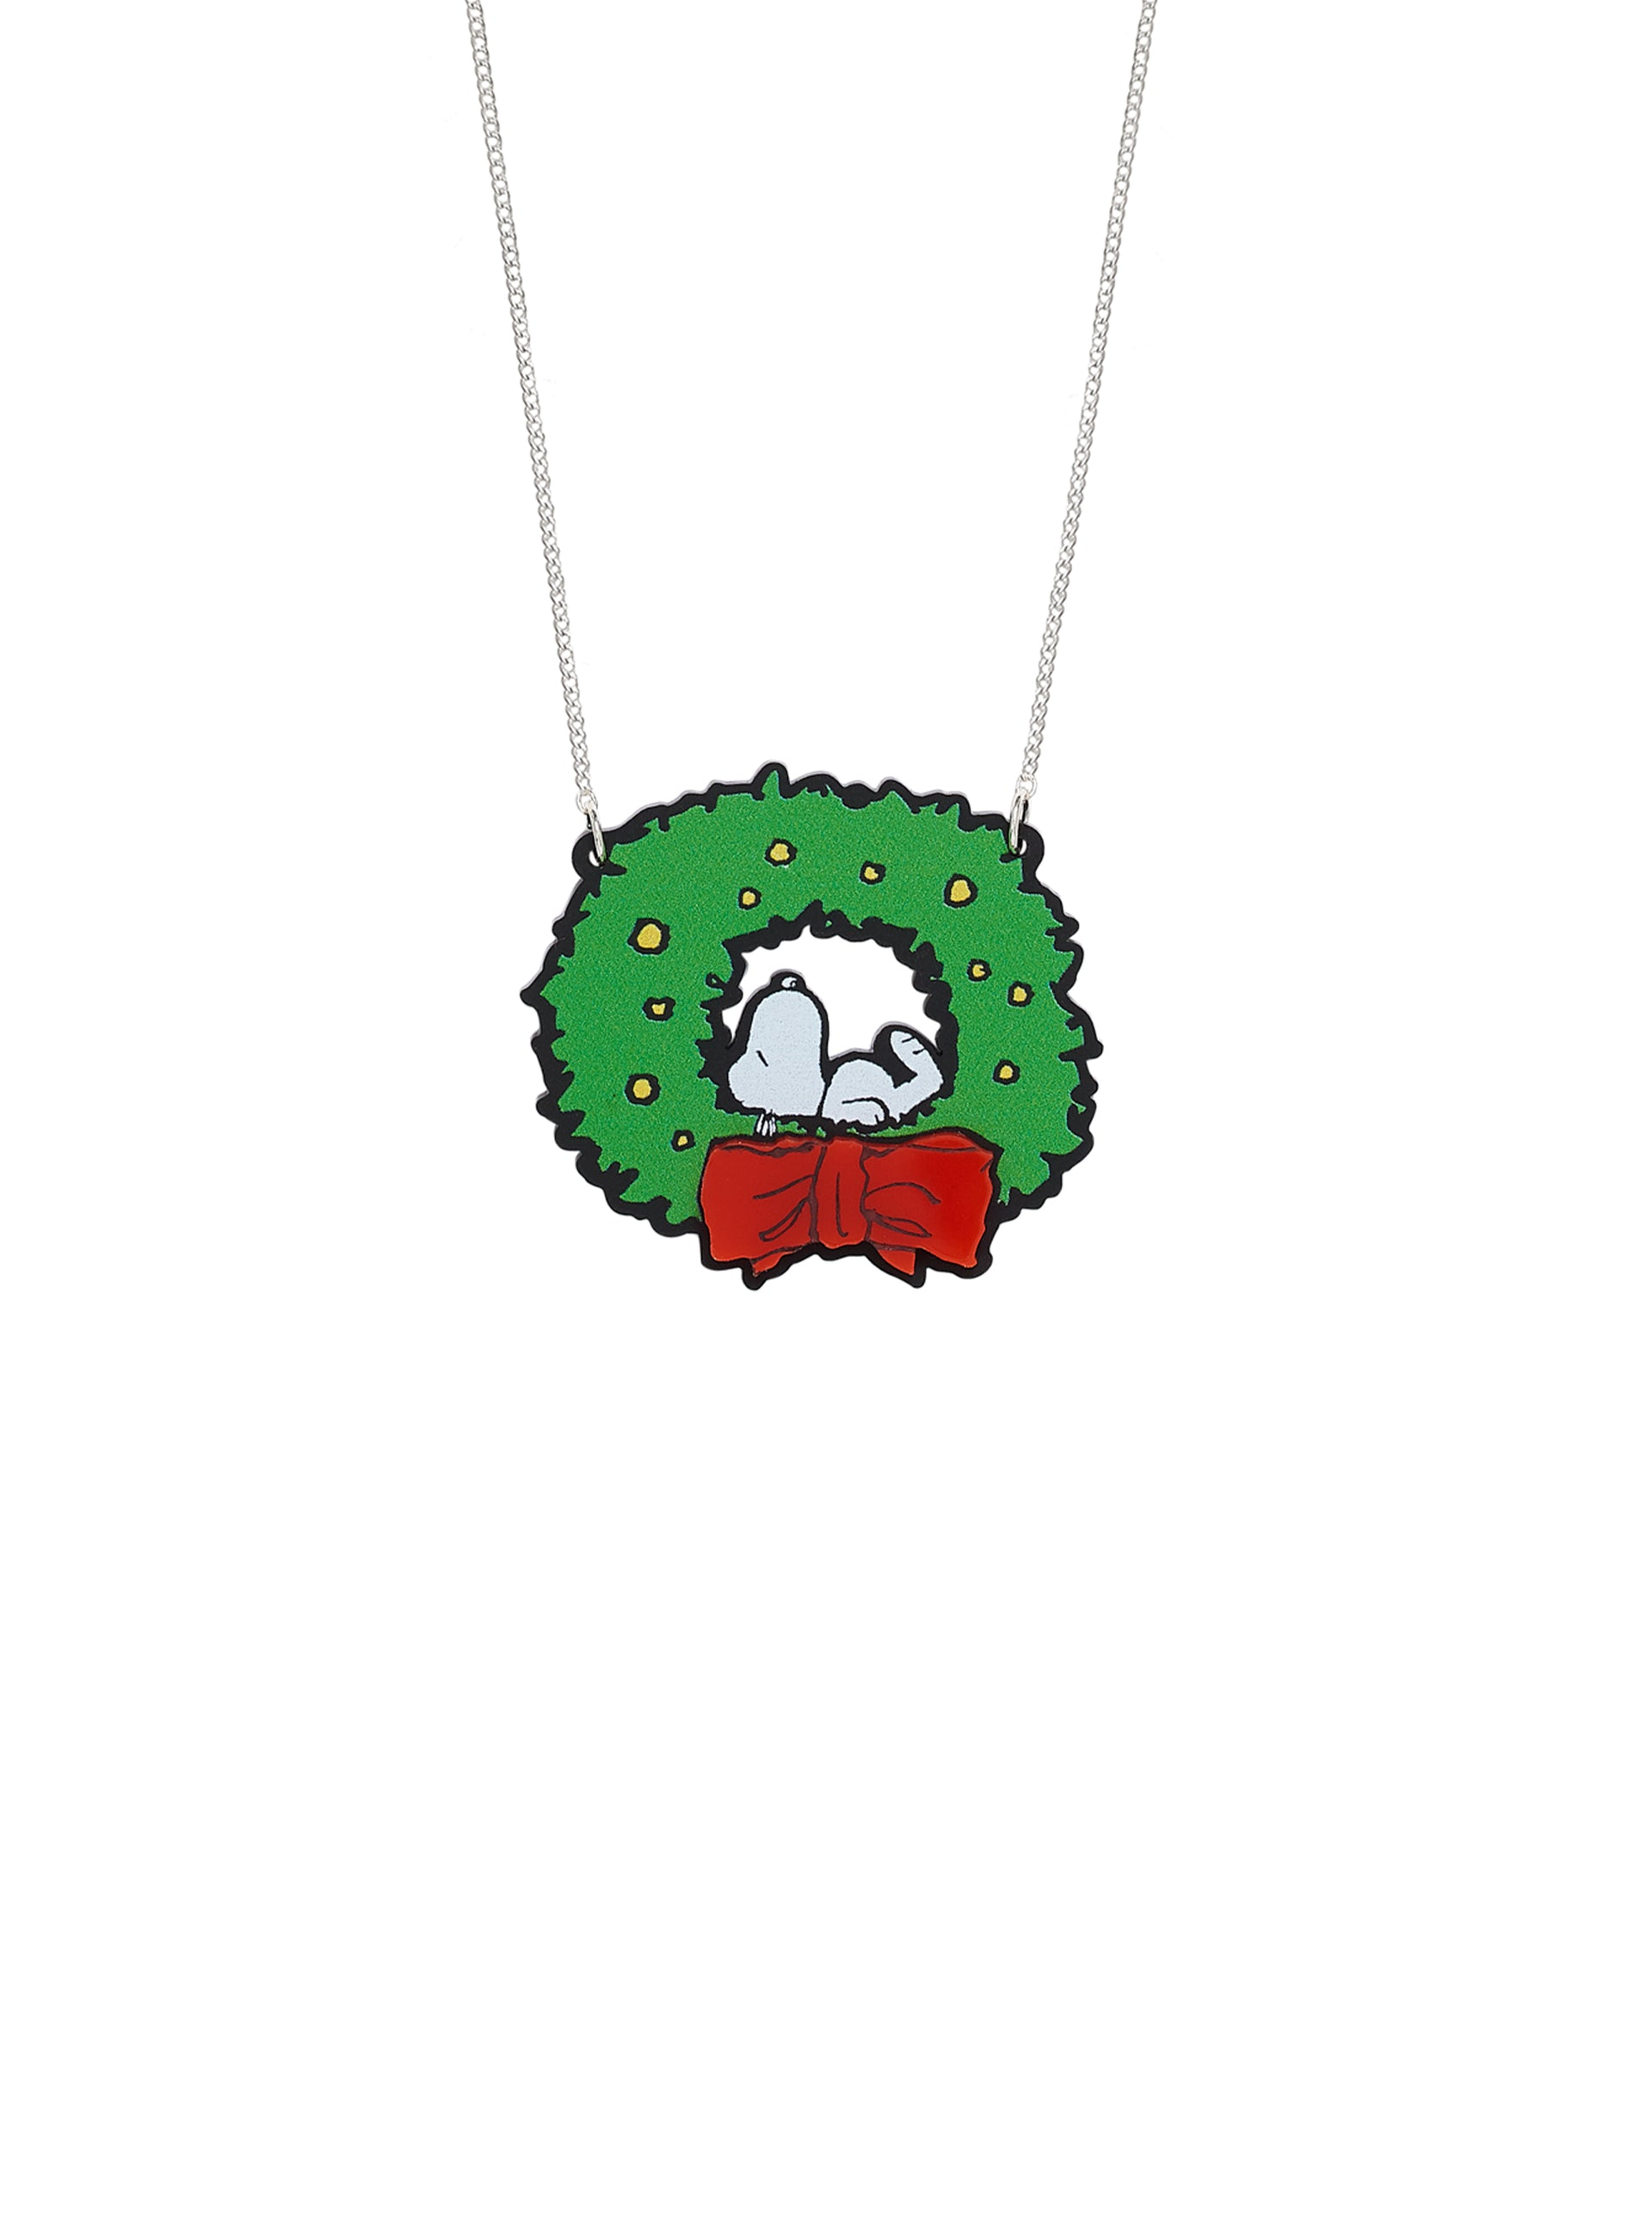 Snoopy Christmas Wreath Necklace